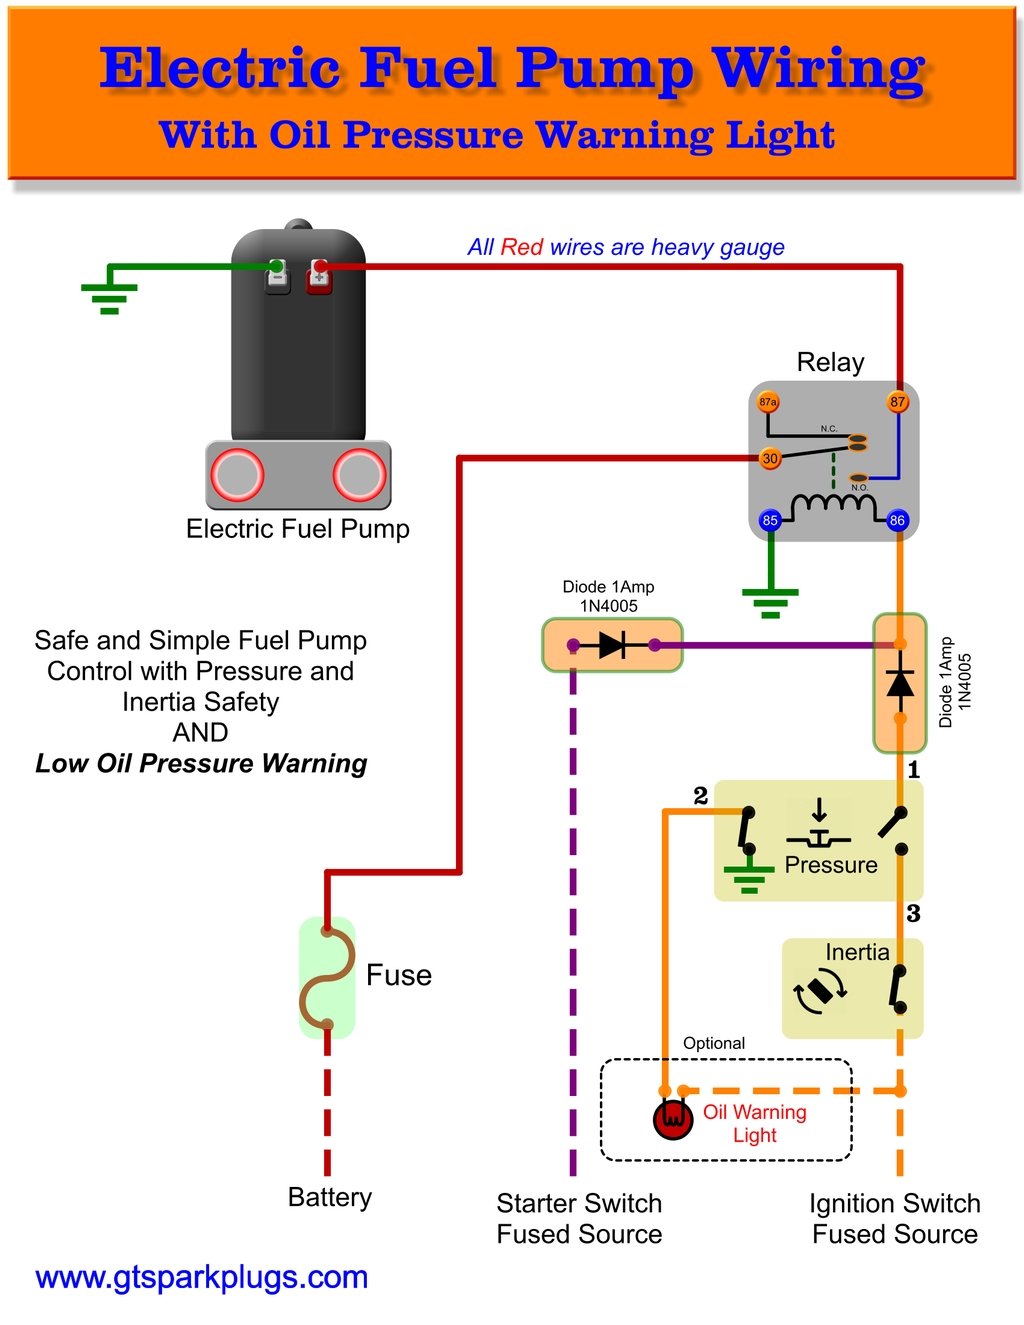 Electric Fuel Pump Wiring Diagram Gtsparkplugs Wall Switch Schematic This Is A Simple Guide To Safer For Your Spend Some Time Things Up Right And In The Event Of Problem It Can Save You